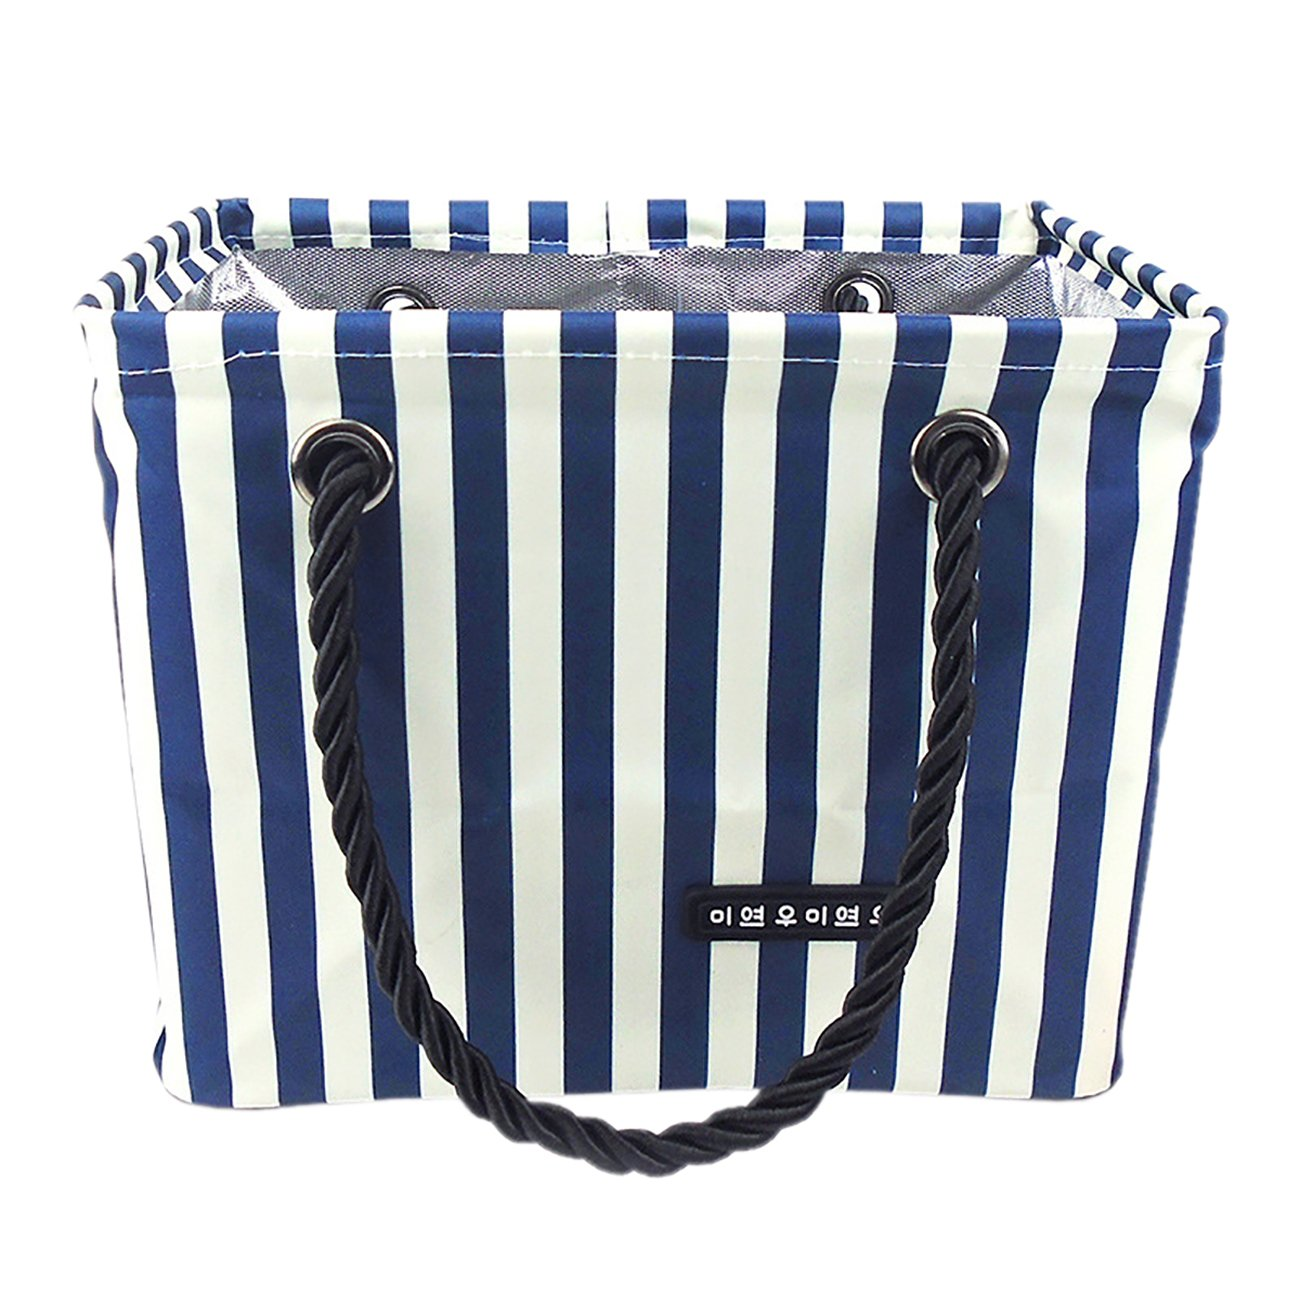 THEE Oxford Stripe Mesh Shower Caddy Shower Tote Bathrooms Bag